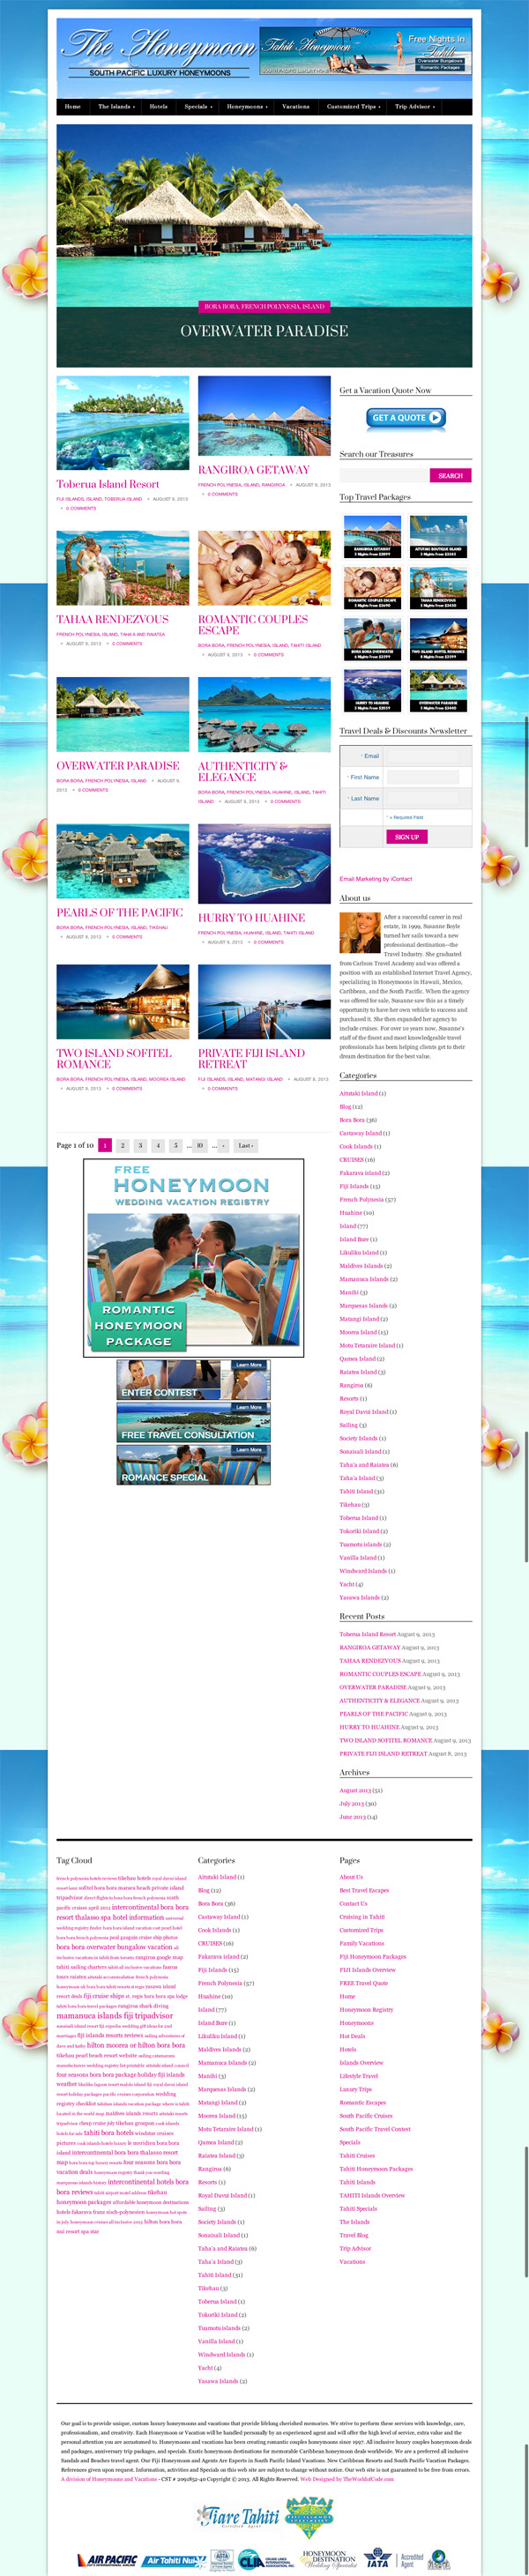 TheHoneymoon-081713-600-2